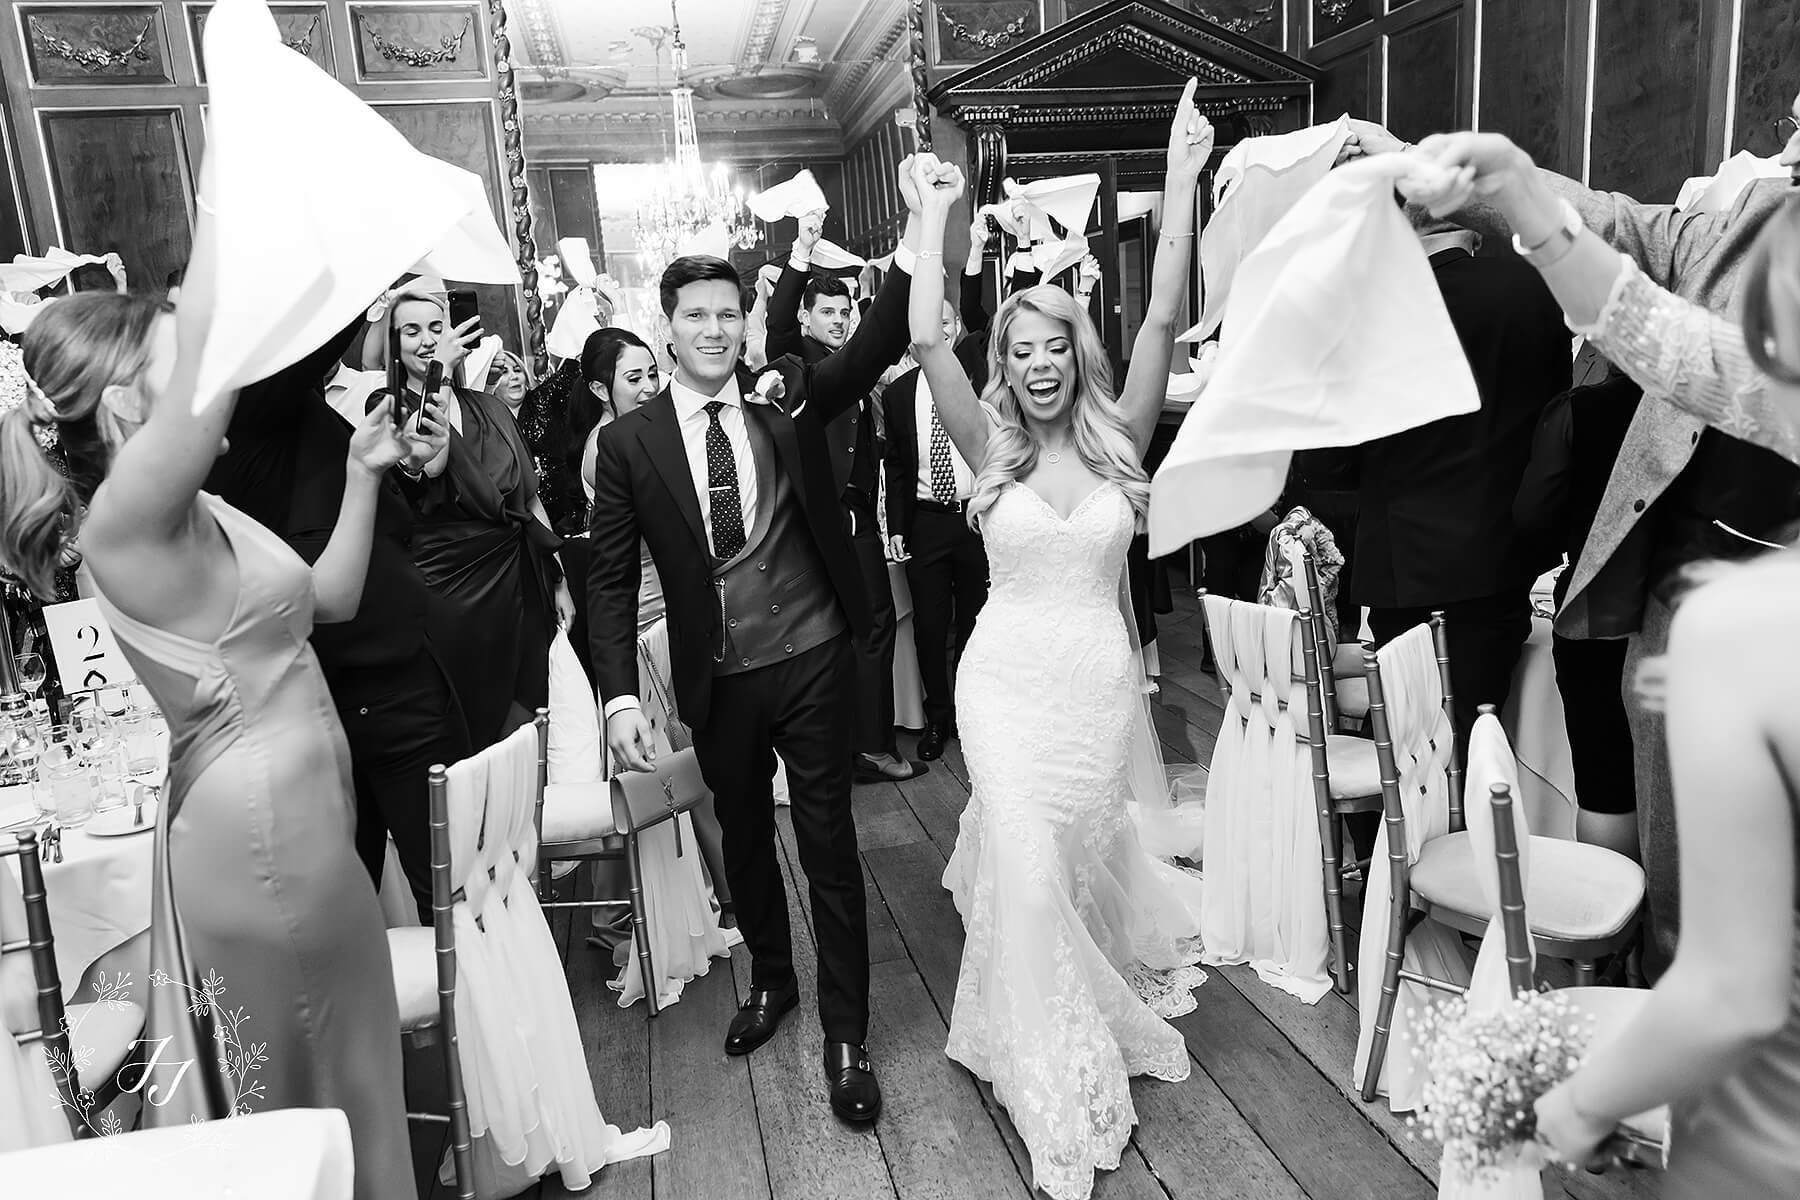 the bride and groom enter the ballroom and the guest are all cheering as they are announced